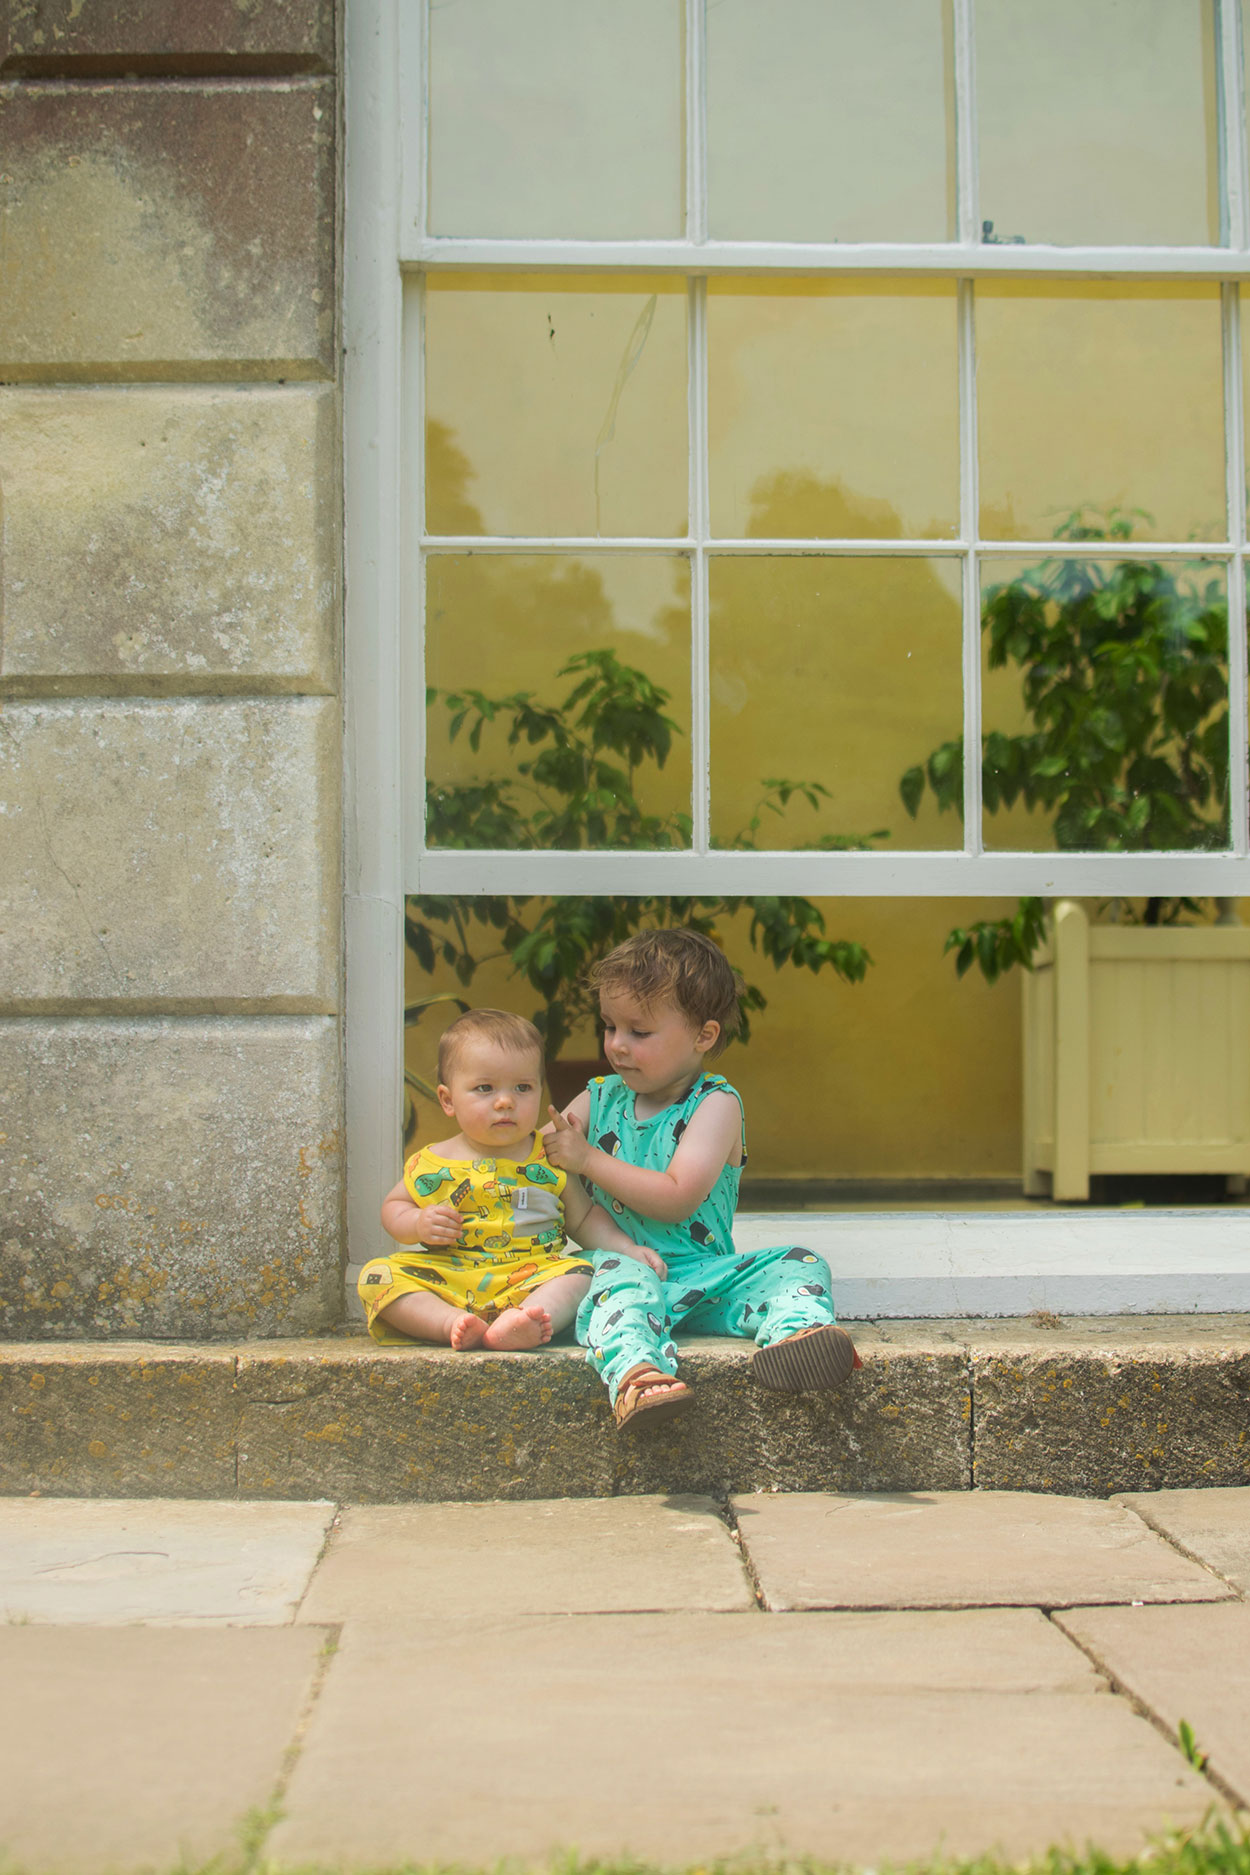 Two brothers wearing Indikidual sushi playsuits sitting together on large window of the orangery/greenhouse at Dyrham Park in Bath